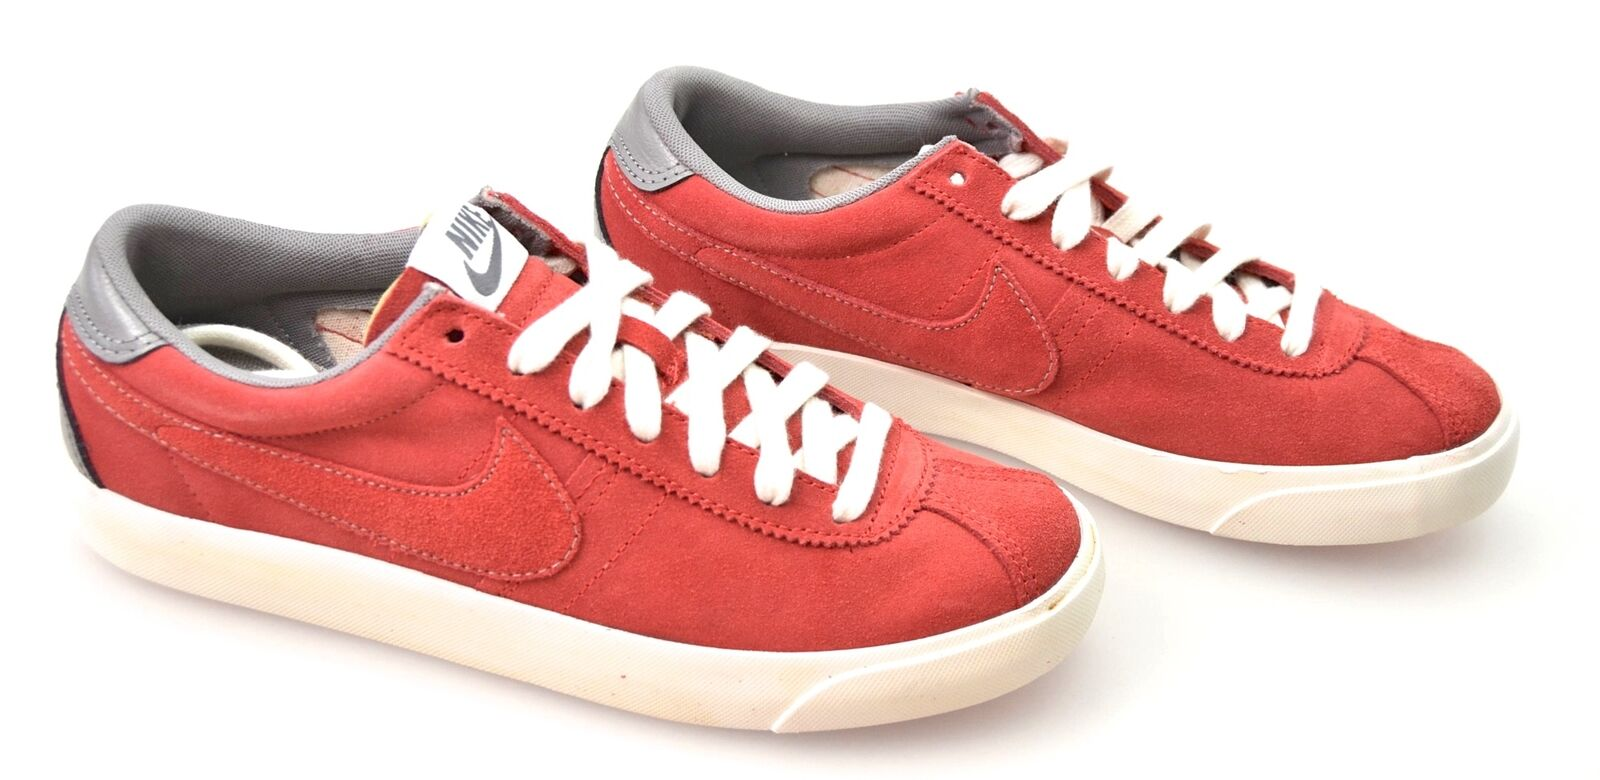 NIKE MAN SNEAKER SHOES CASUAL FREE TIME SUEDE CODE NIKE BRUIN VNTG 488315 801